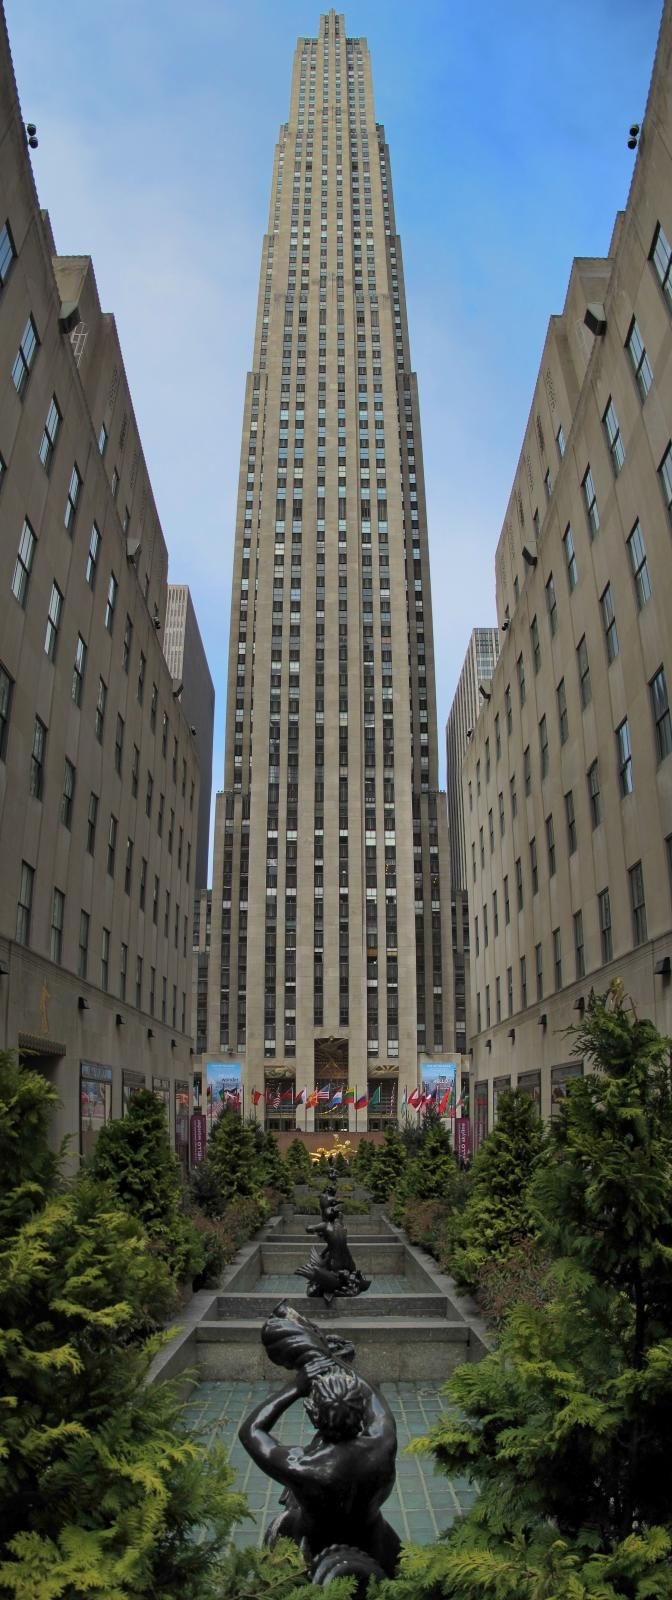 Garden|Rockefeller Center, New York City